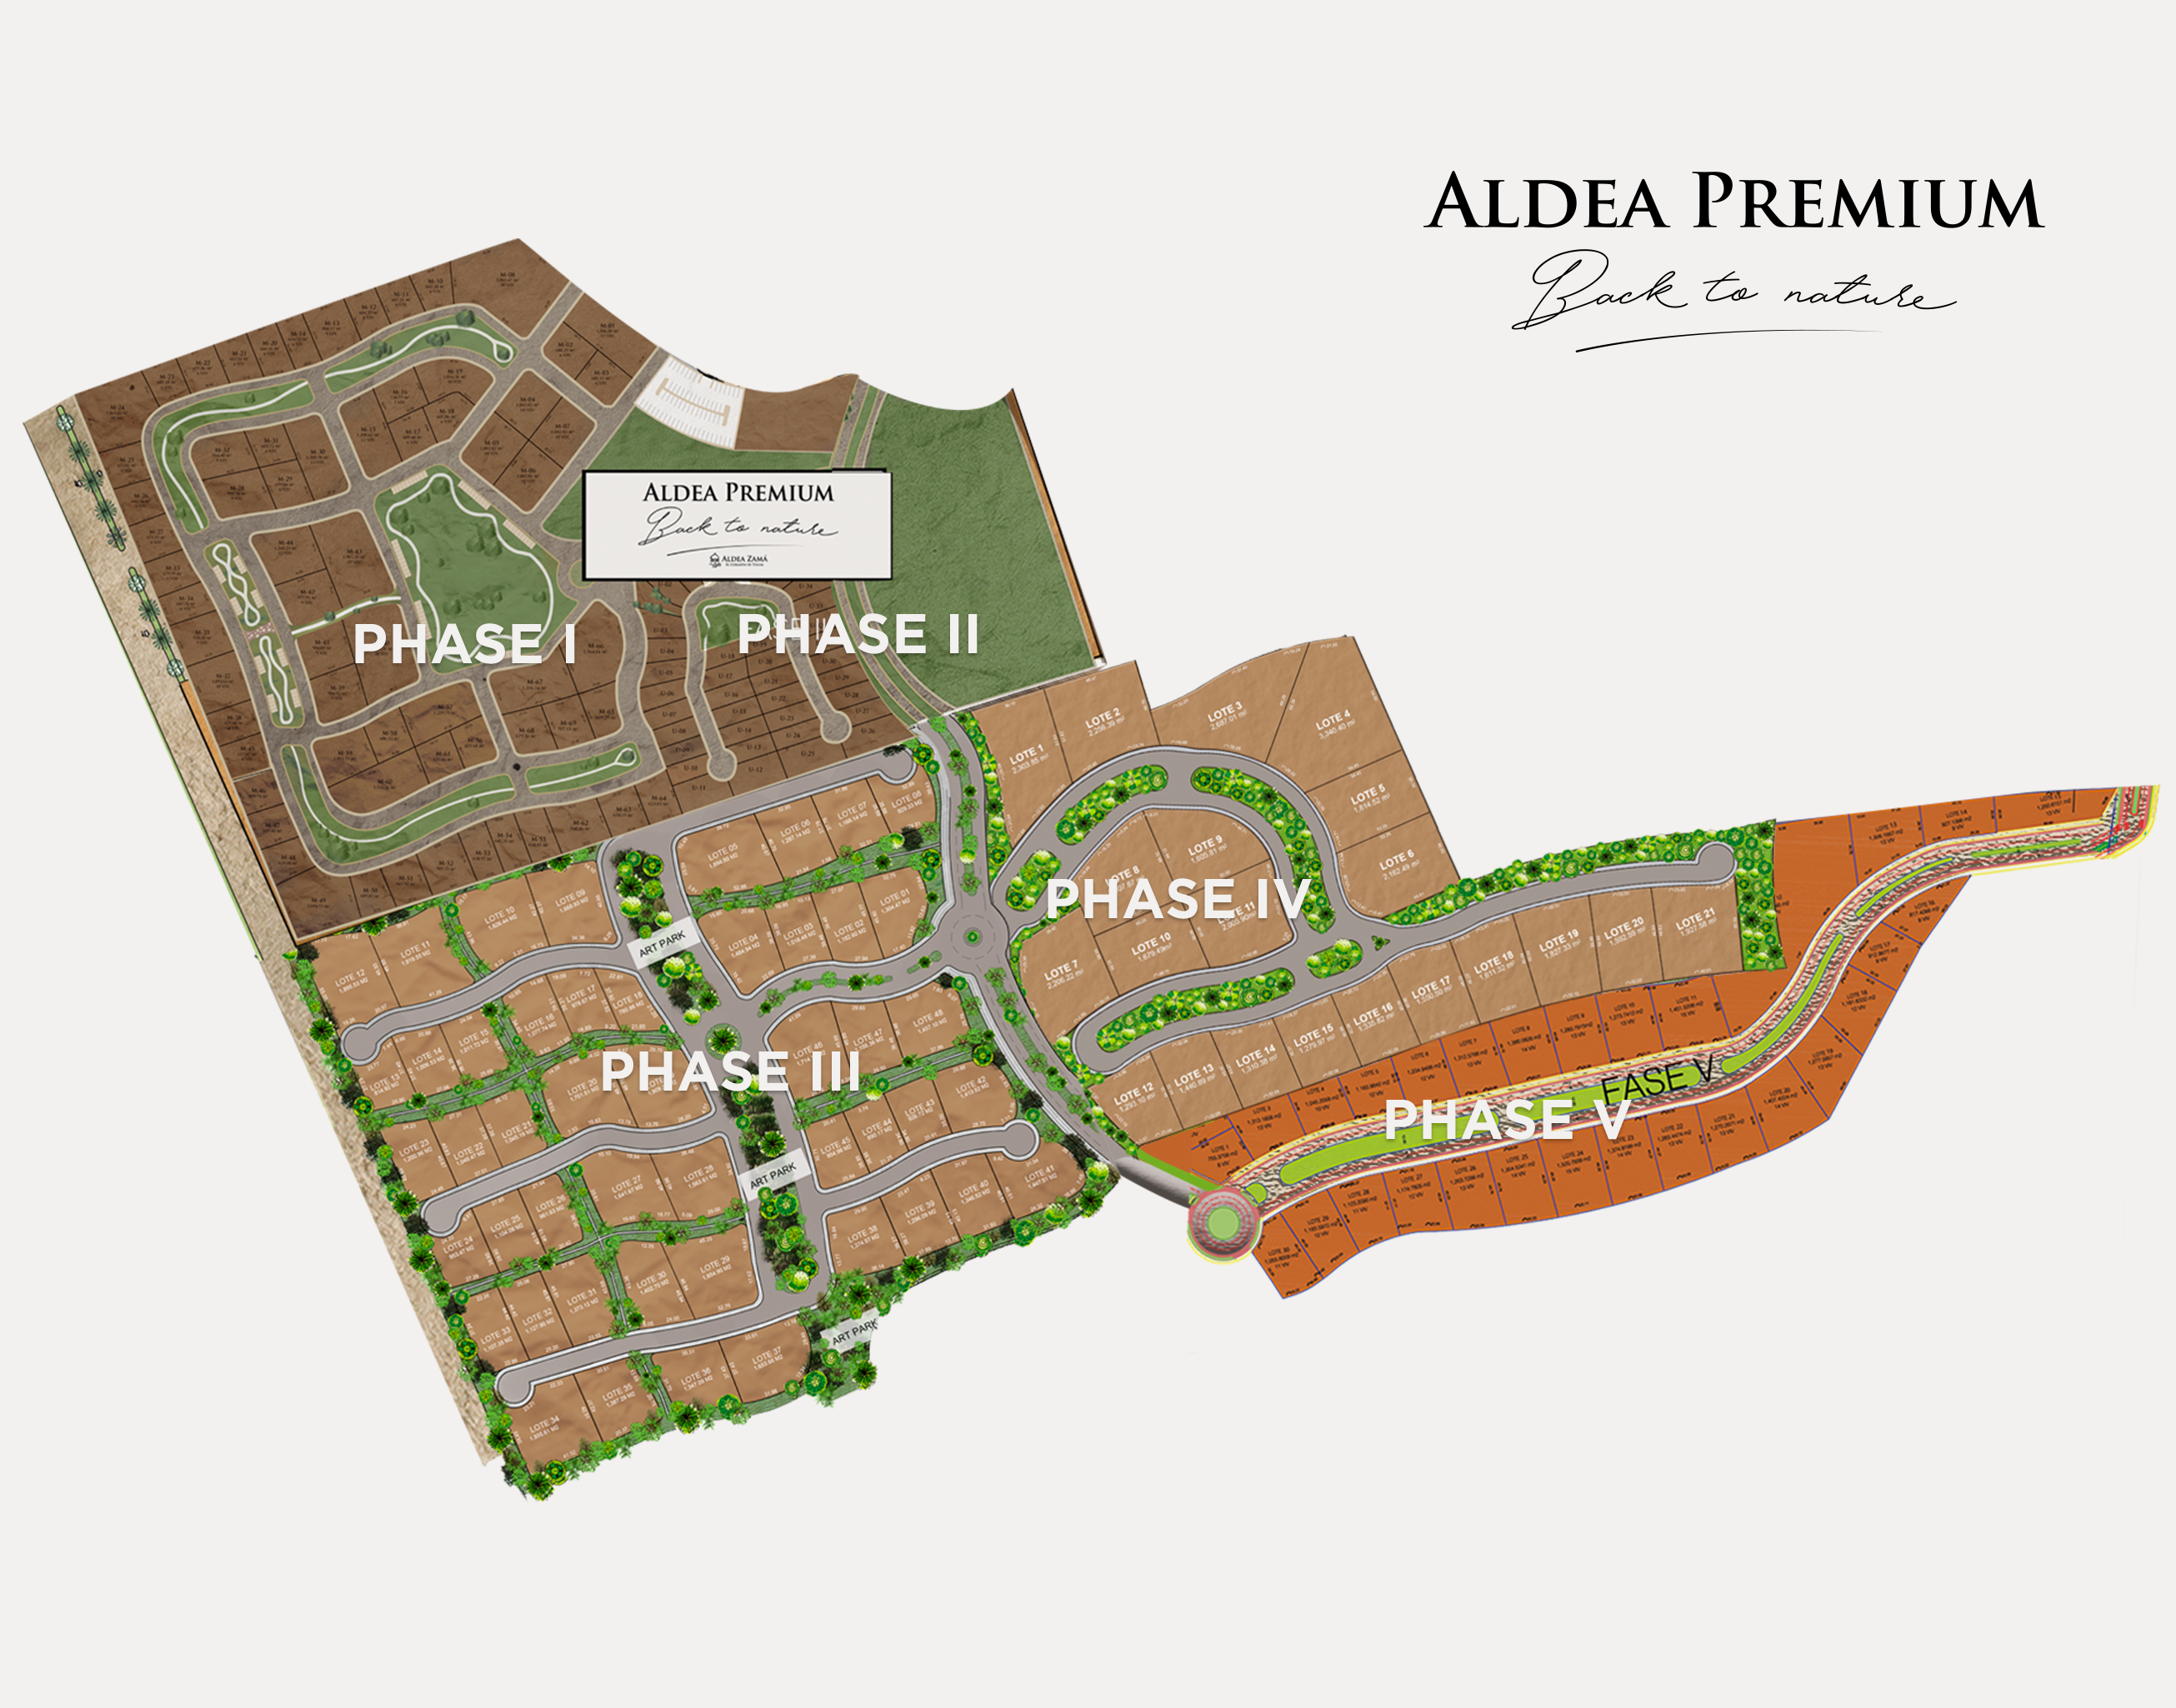 multifamily-lot-Tulum-investment-aldea-premium-Exterior